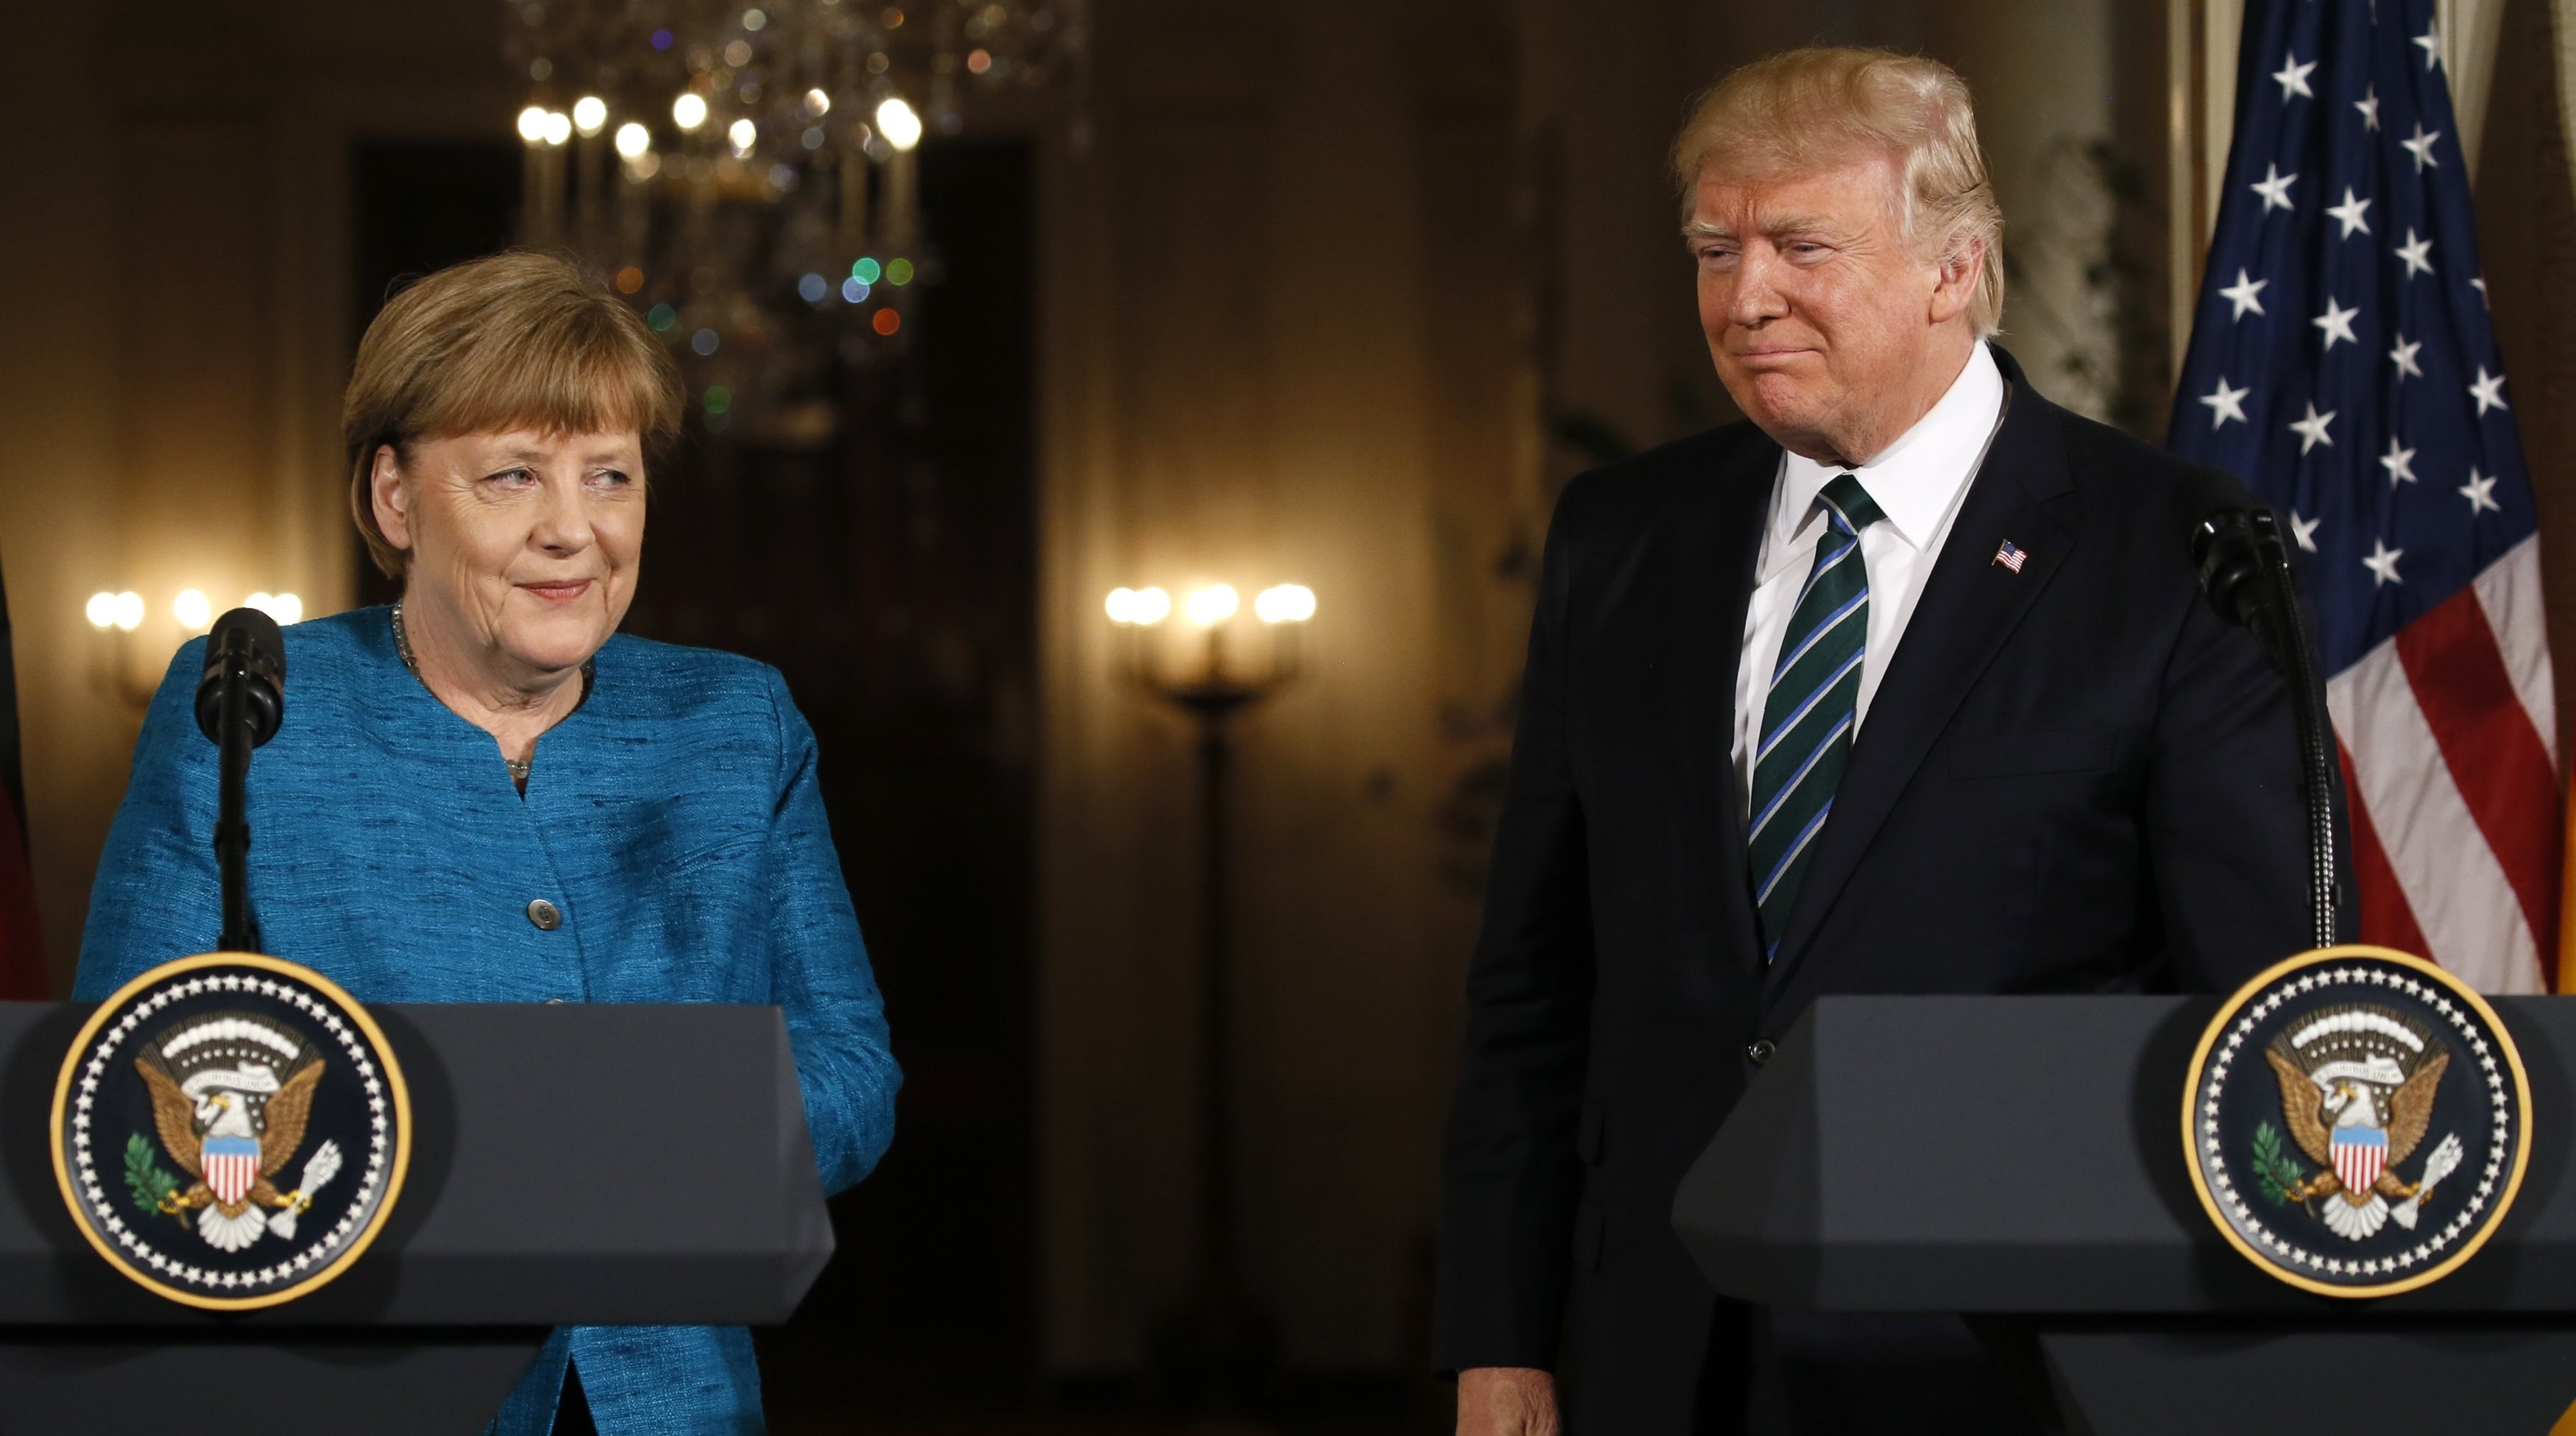 U.S. President Donald Trump and German Chancellor Angela Merkel conclude their joint news conference in the East Room of the White House in Washington, U.S., on March 17, 2017. (REUTERS/Jim Bourg)